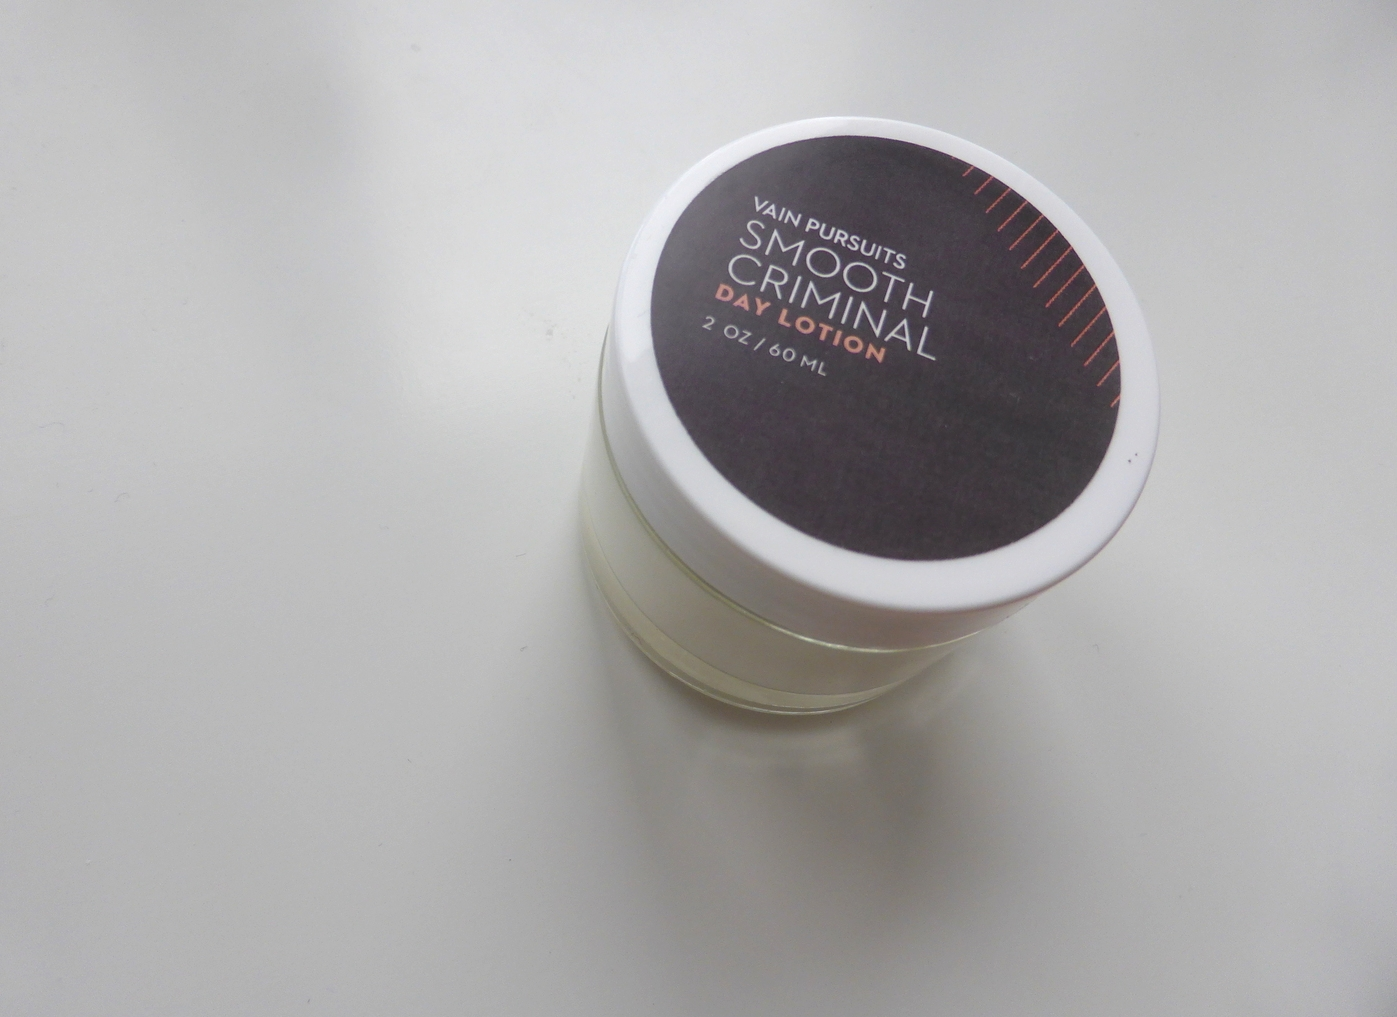 Vain Pursuits - Custom Day Lotion - Smooth Criminal with gray label - Made in Montreal